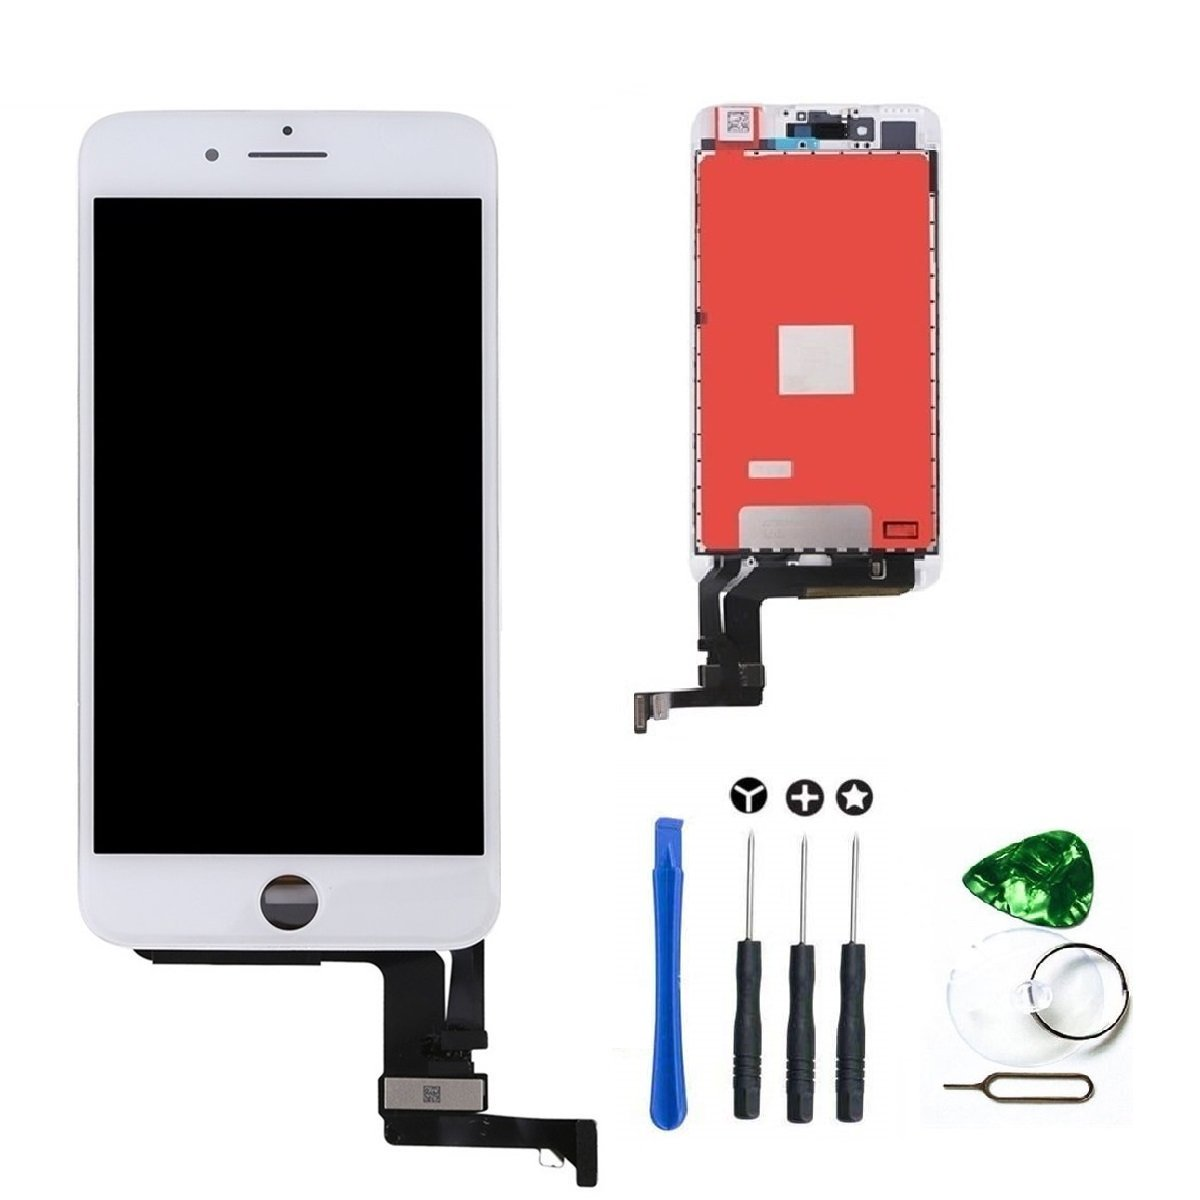 LCD Display Touch Screen Digitizer Glass Replacement Full Assembly with repair kit for iPhone 7 Plus 5.5 inch (White)